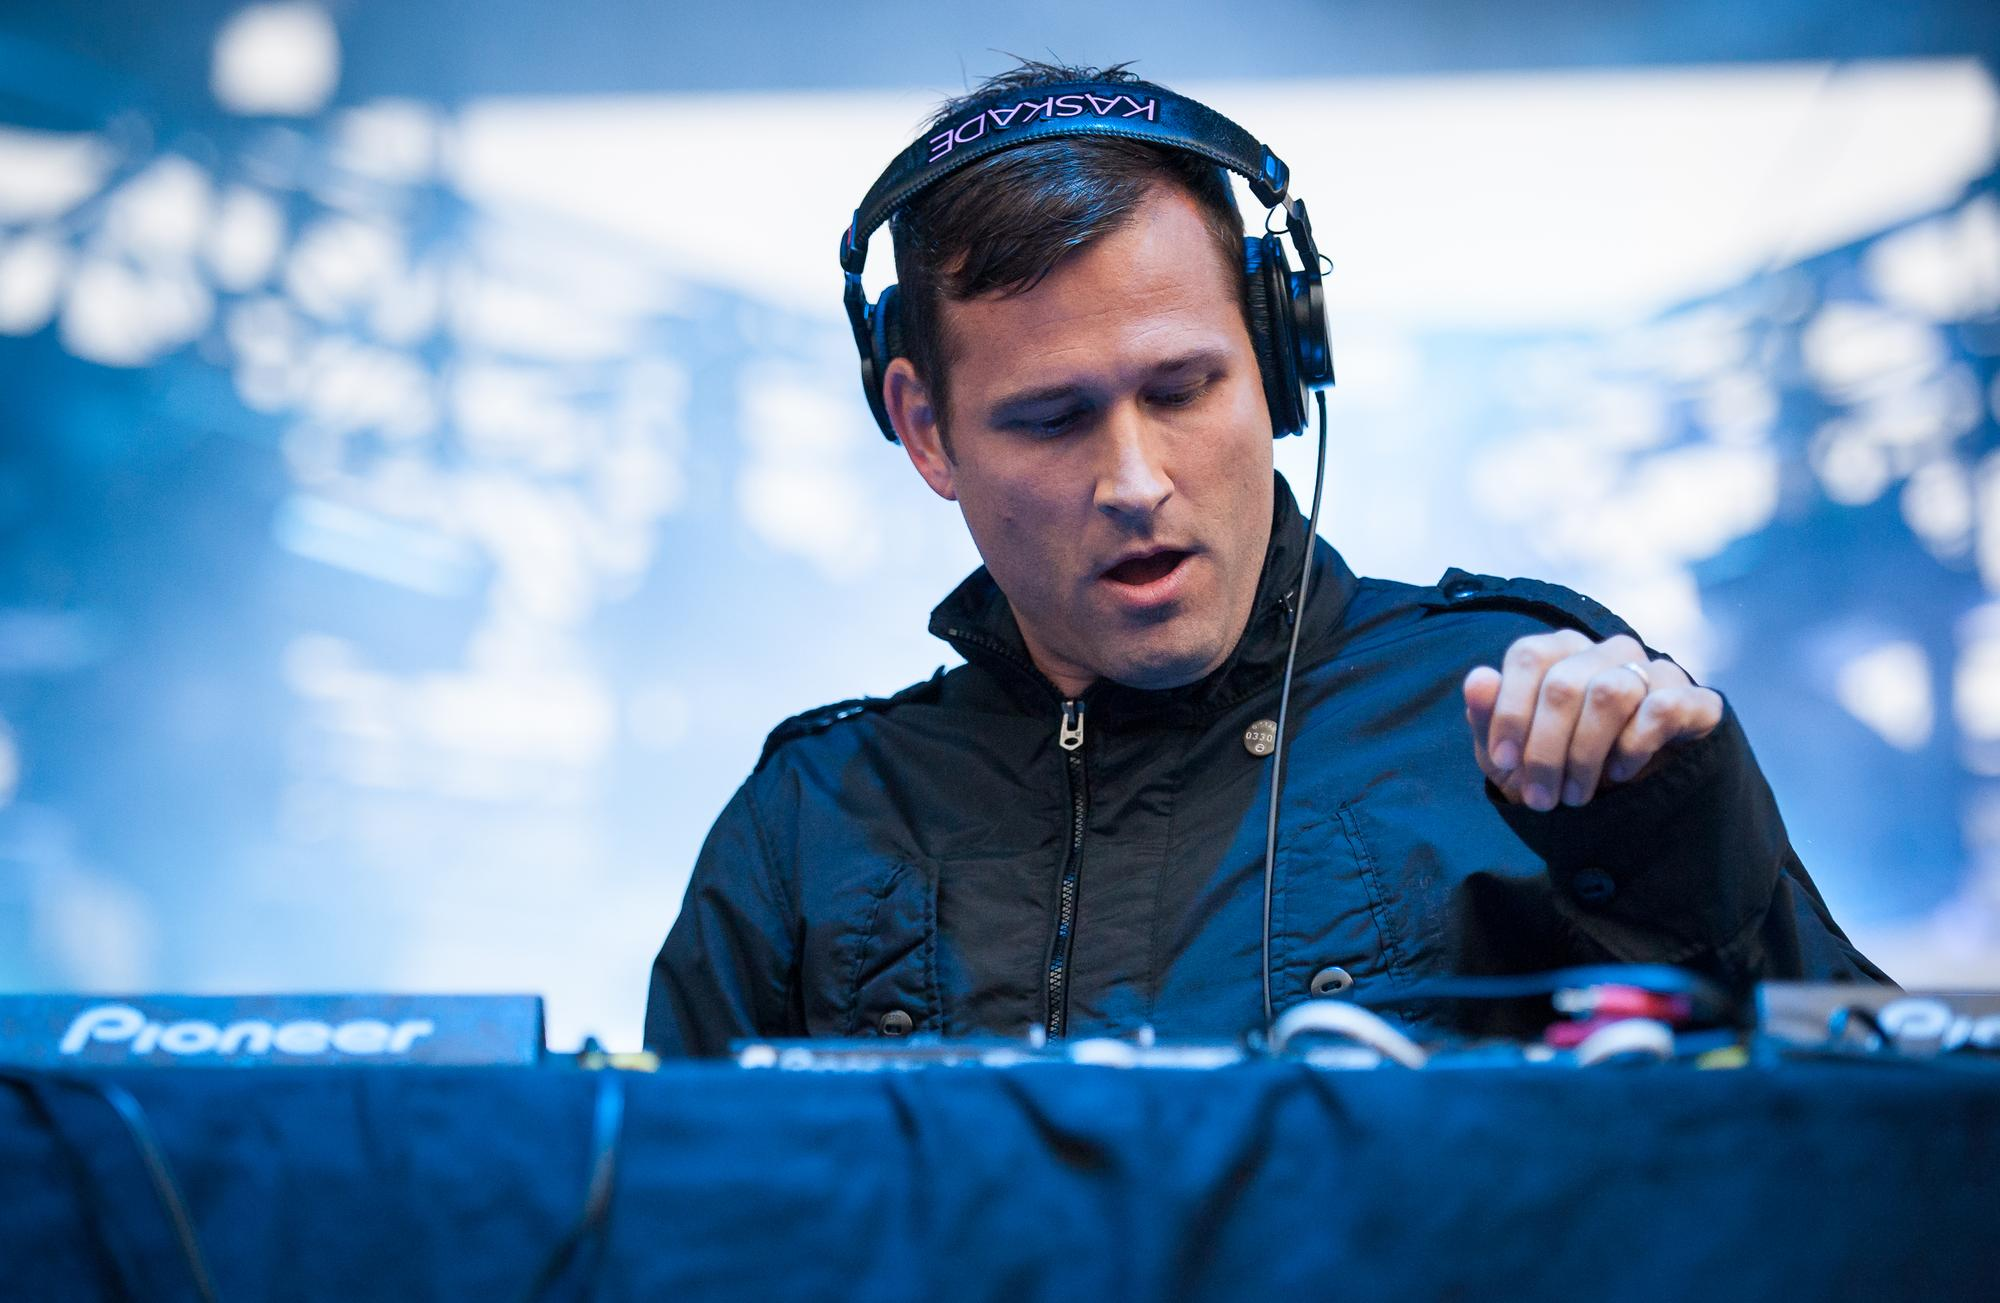 7 Reasons Why Kaskade Is A Dance Music Legend